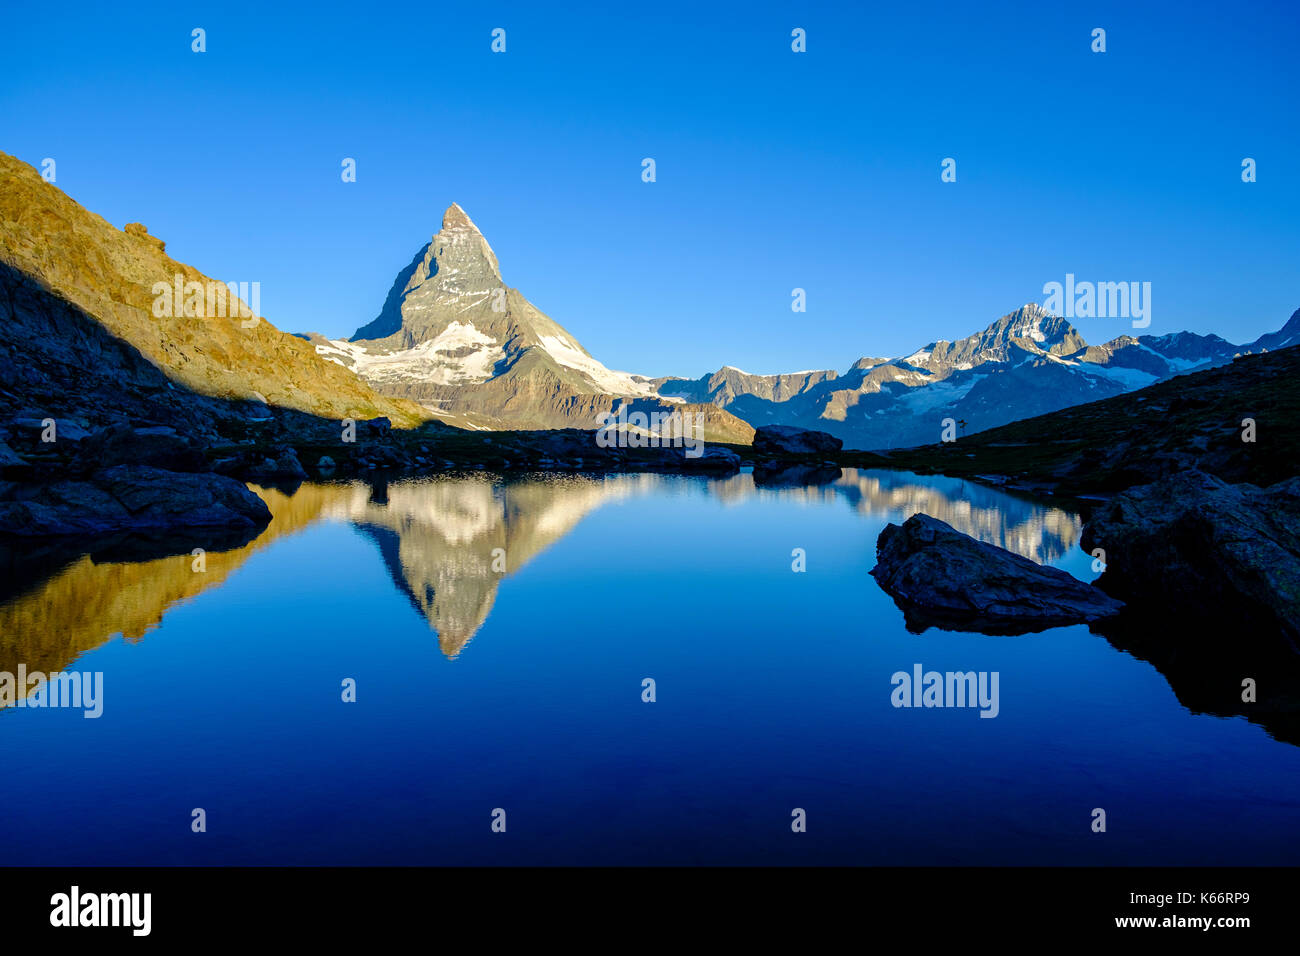 The East Face of the Matterhorn, Monte Cervino, mirroring in the Lake Riffelsee at sunrise - Stock Image